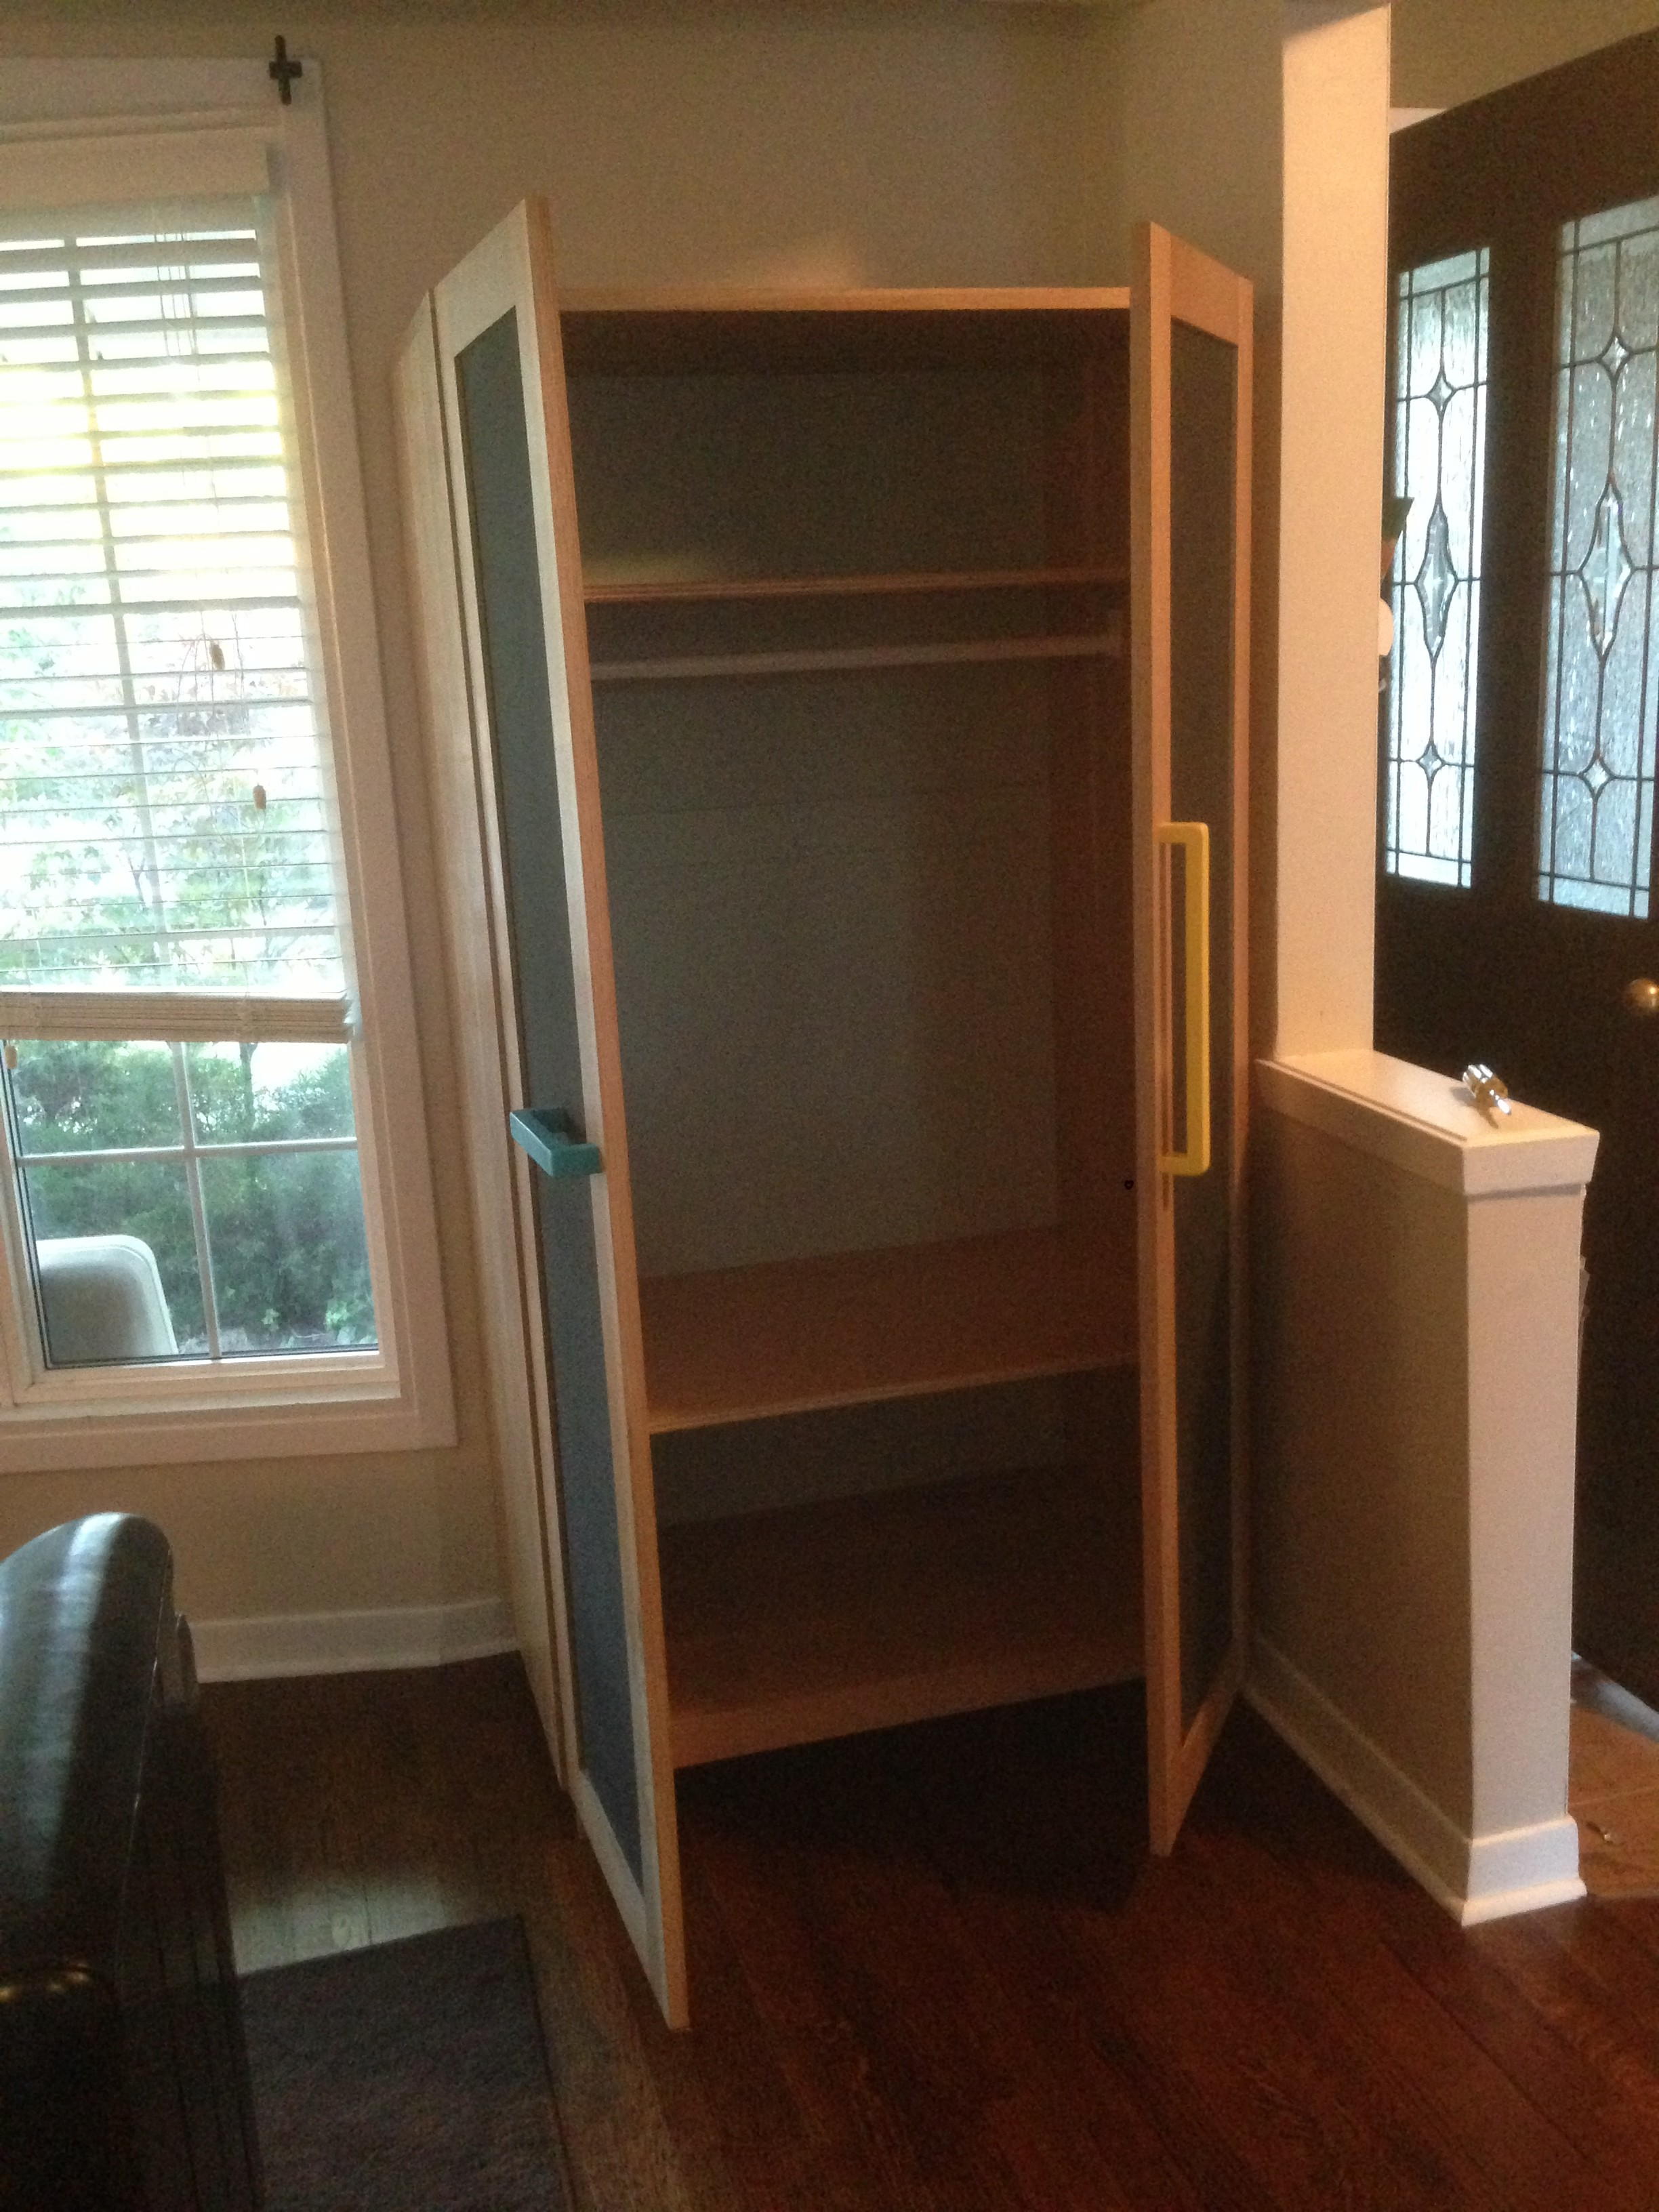 A portable mudroom!  Pretty convenient.